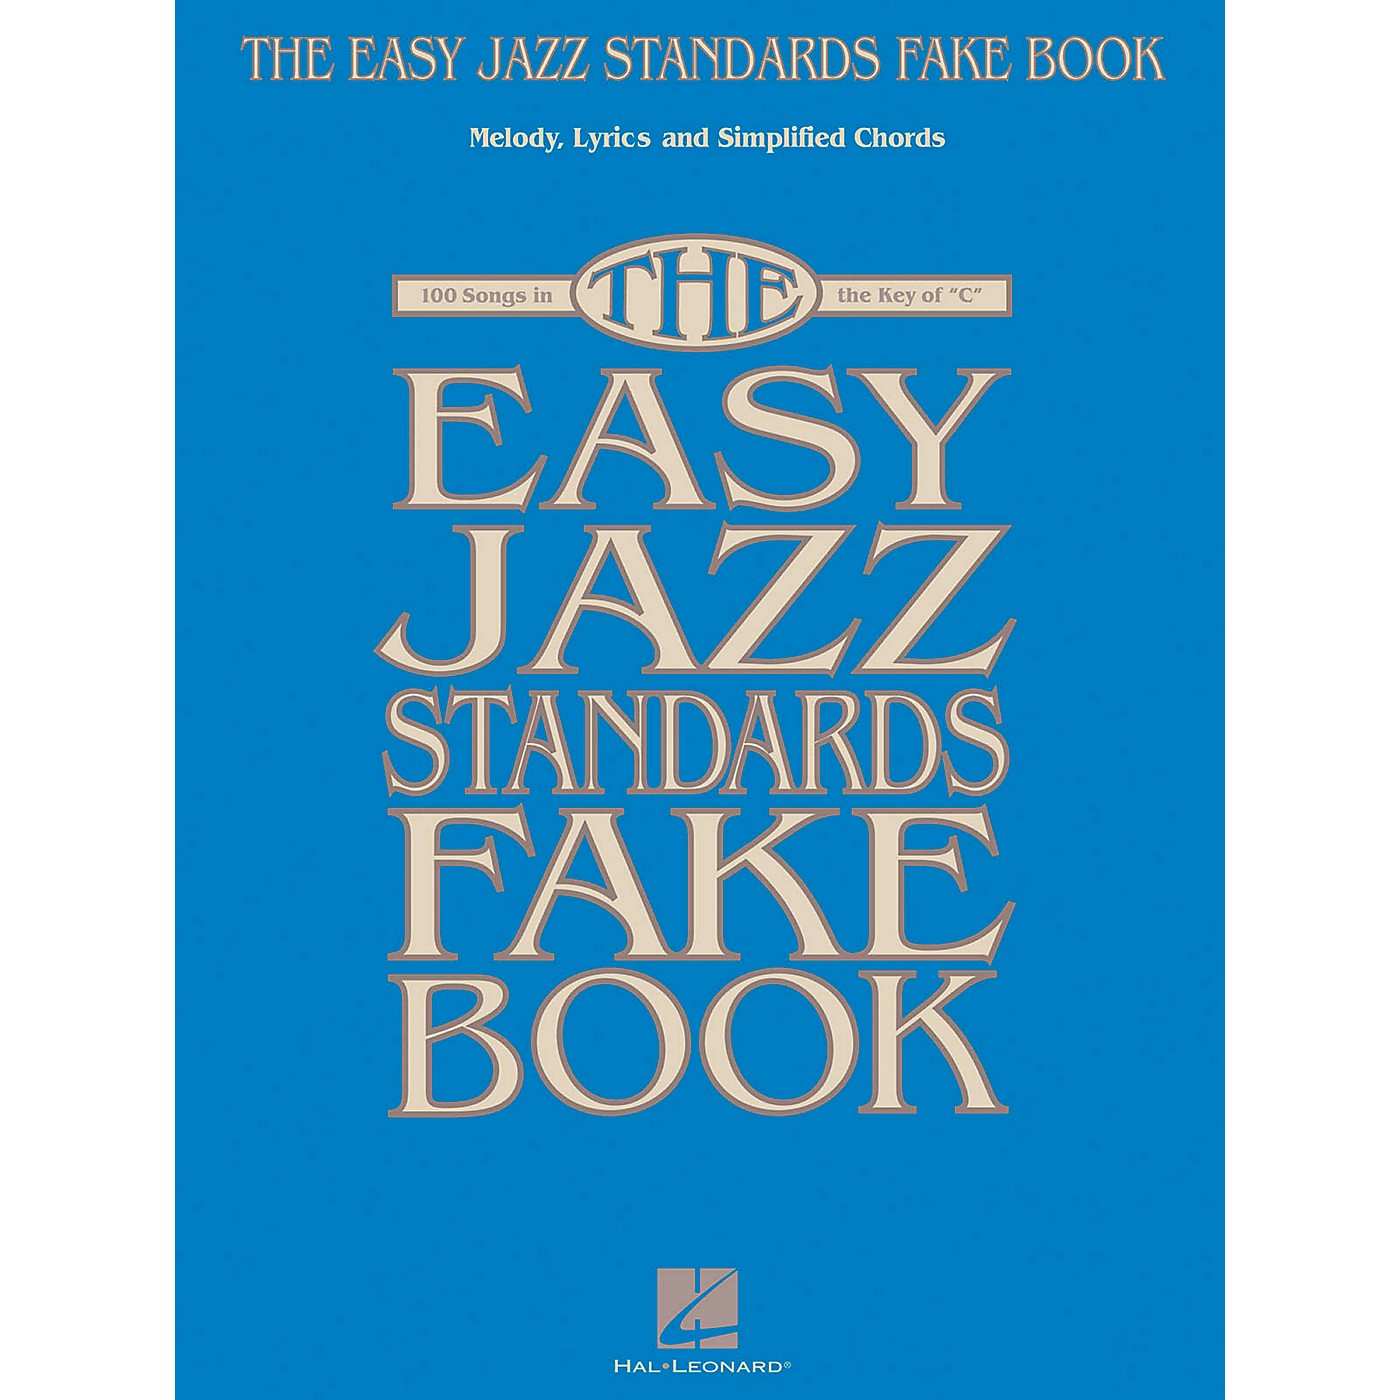 Hal Leonard The Easy Jazz Standards Fake Book - 100 Songs In The Key Of C thumbnail